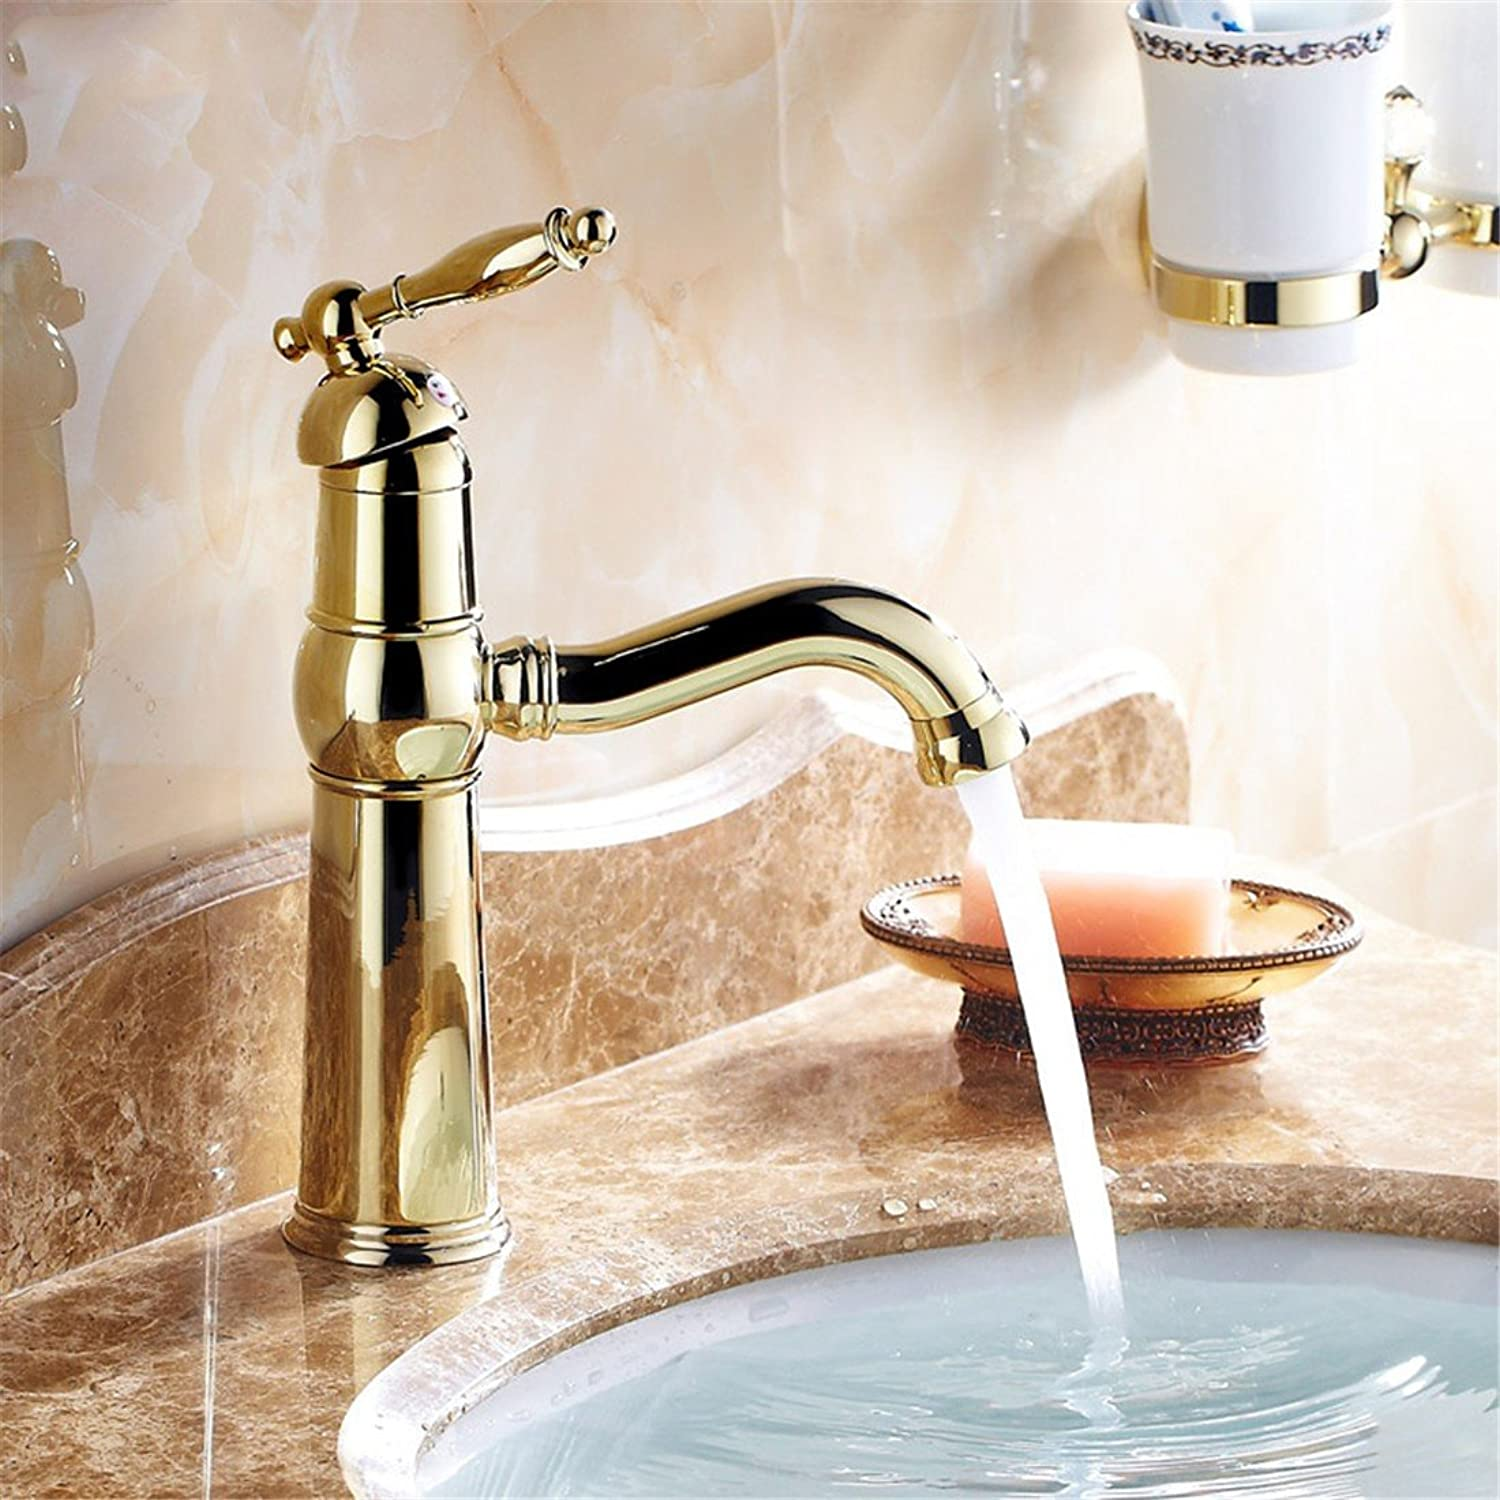 Hlluya Professional Sink Mixer Tap Kitchen Faucet The golden faucet hot and cold taps full copper bathroom plus high bluee-tiled table top basin gold plated antique taps, gold taps